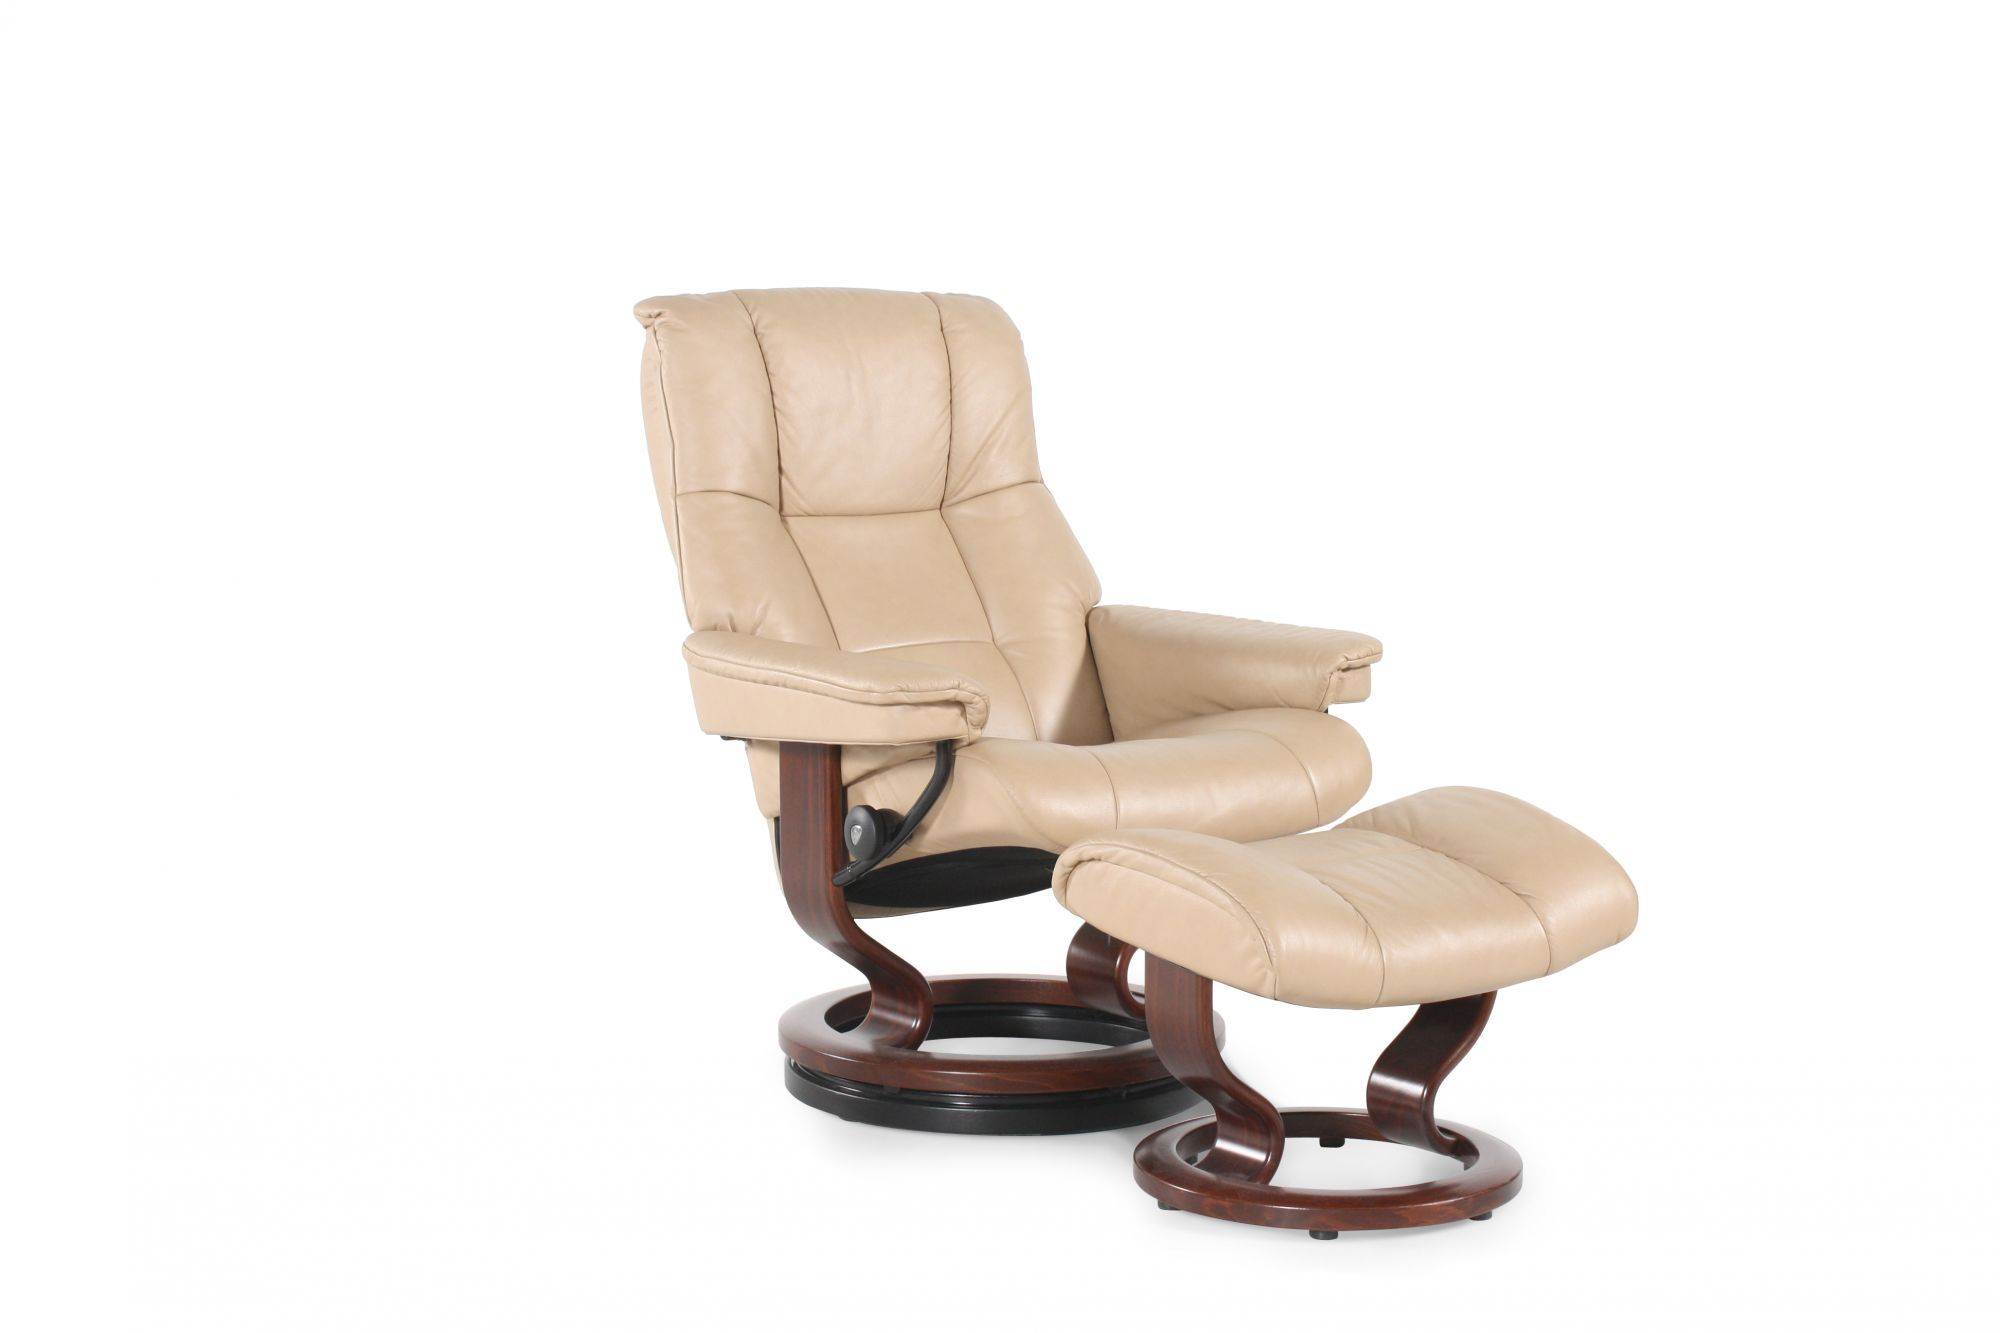 Ekornes Mayfair Paloma Sand Chair And Ottoman | Mathis Brothers Furniture